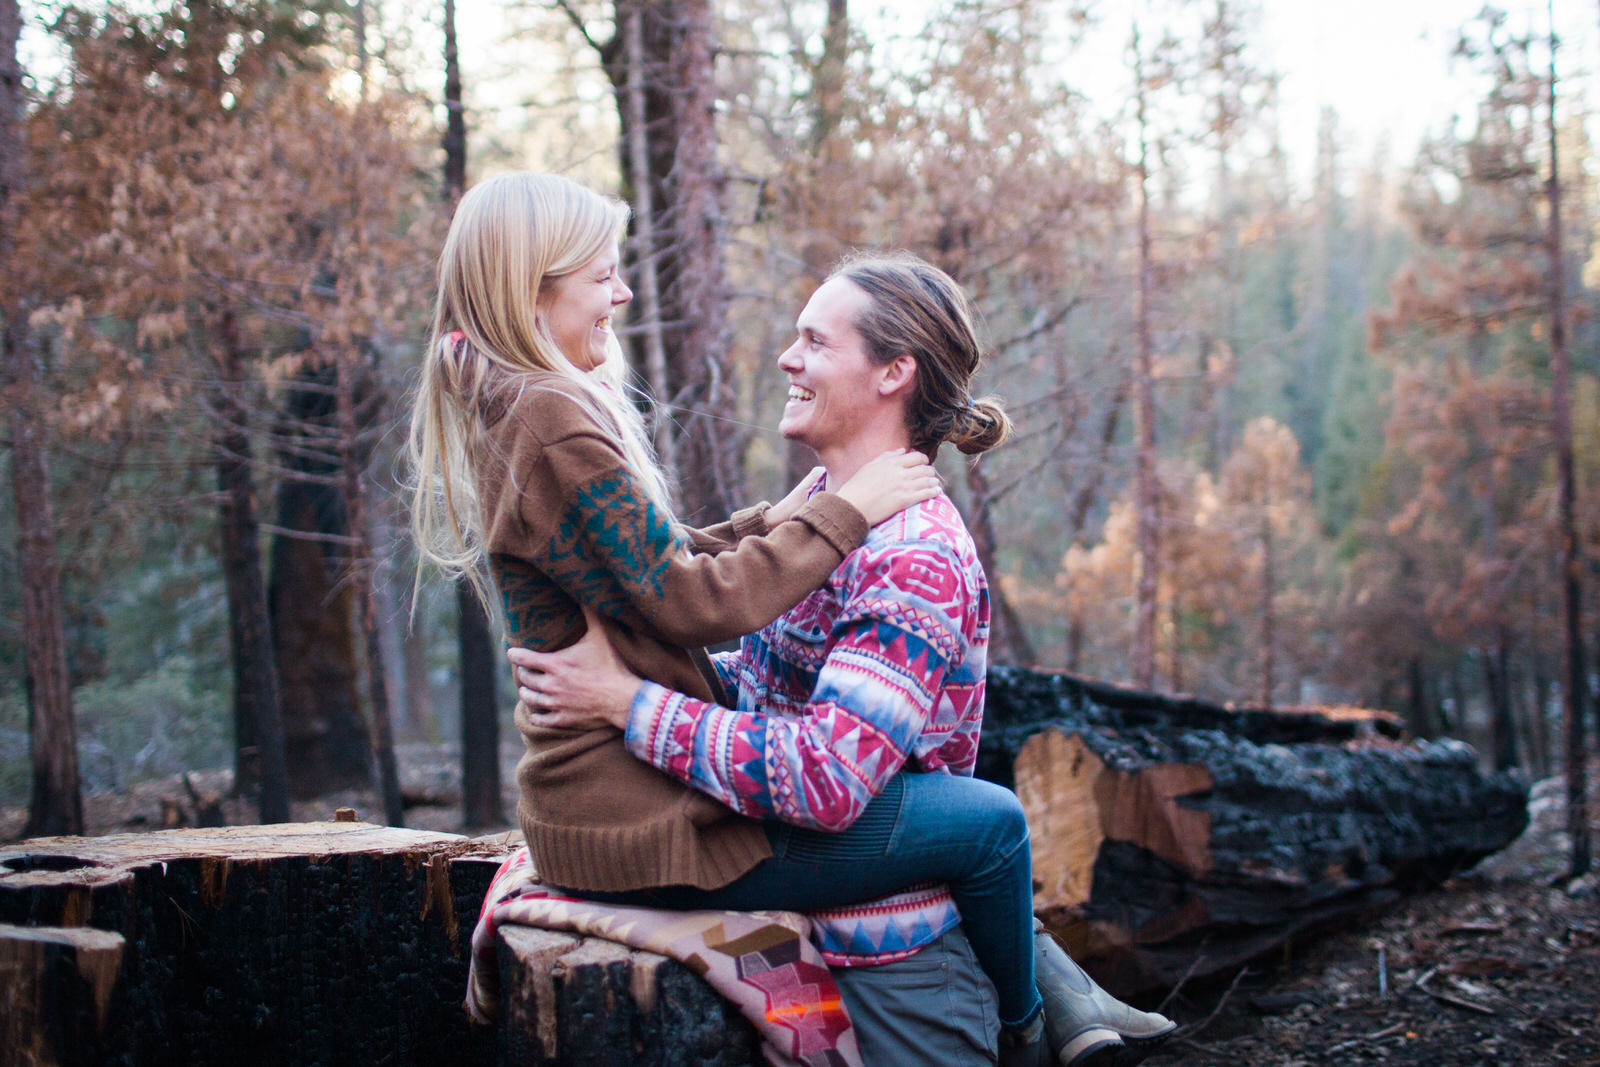 Tonya Merke Photography Couples Adventure Session Yosemite NP